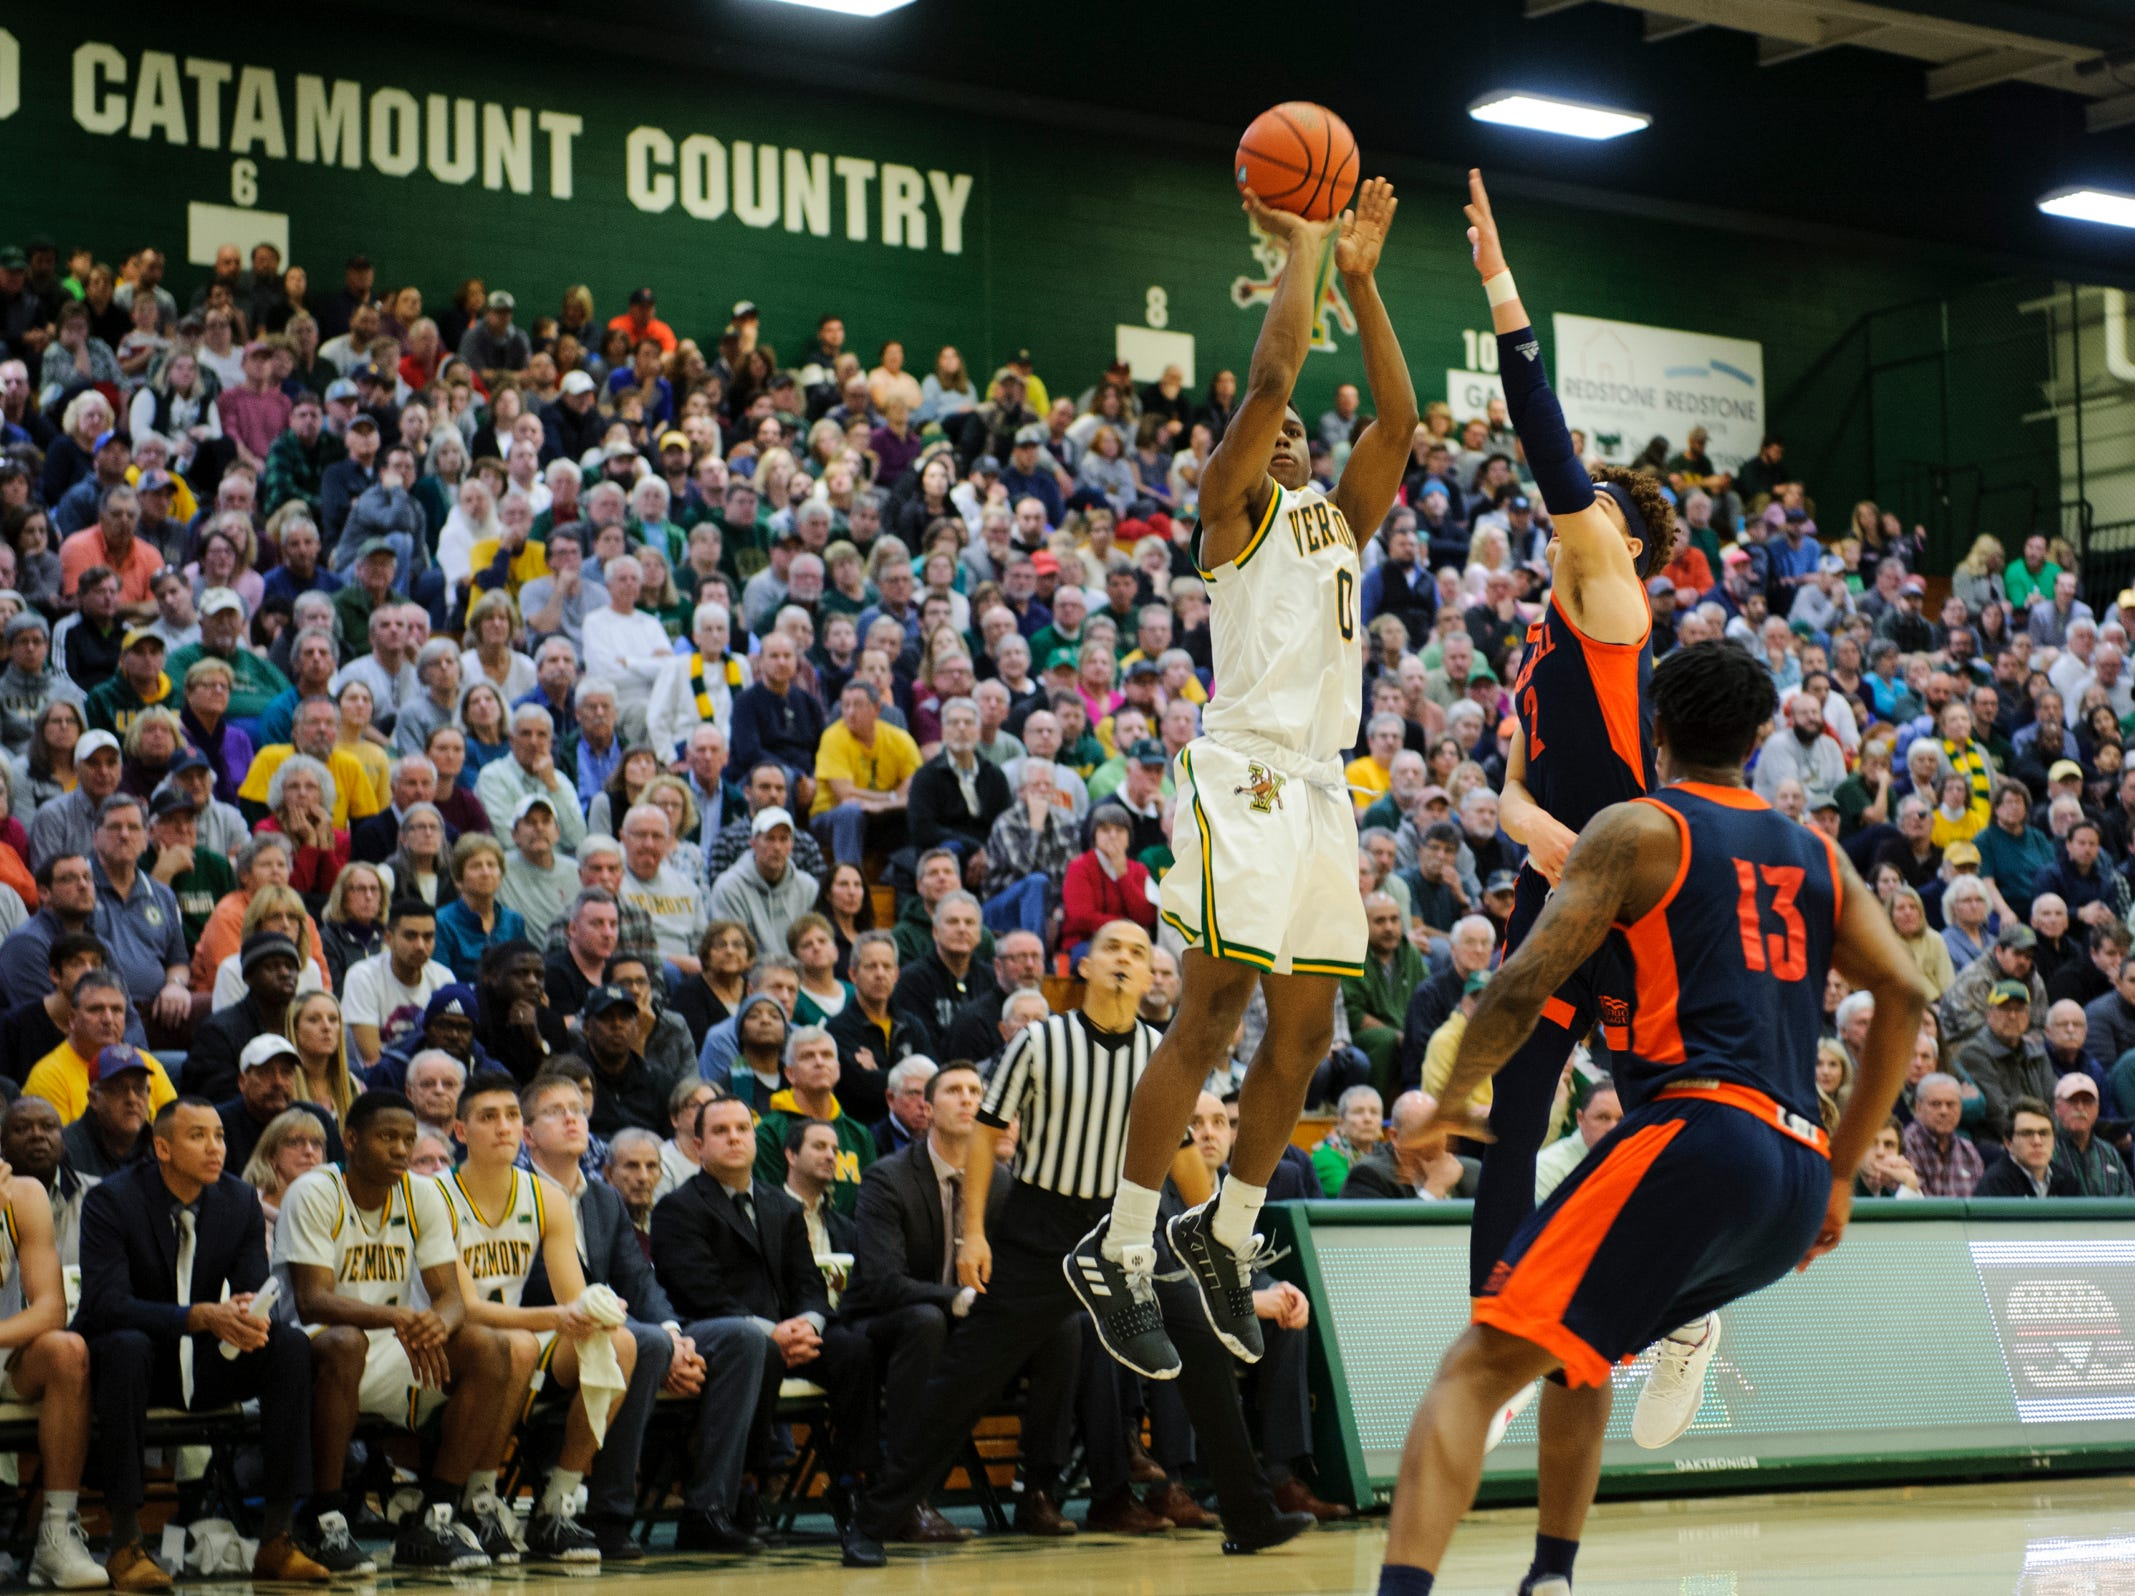 Vermont guard Stef Smith (0) shoots a three pointer during the men's basketball game between the Bucknell Bison and the Vermont Catamounts at Patrick Gym on Sunday afternoon November 25, 2018 in Burlington.